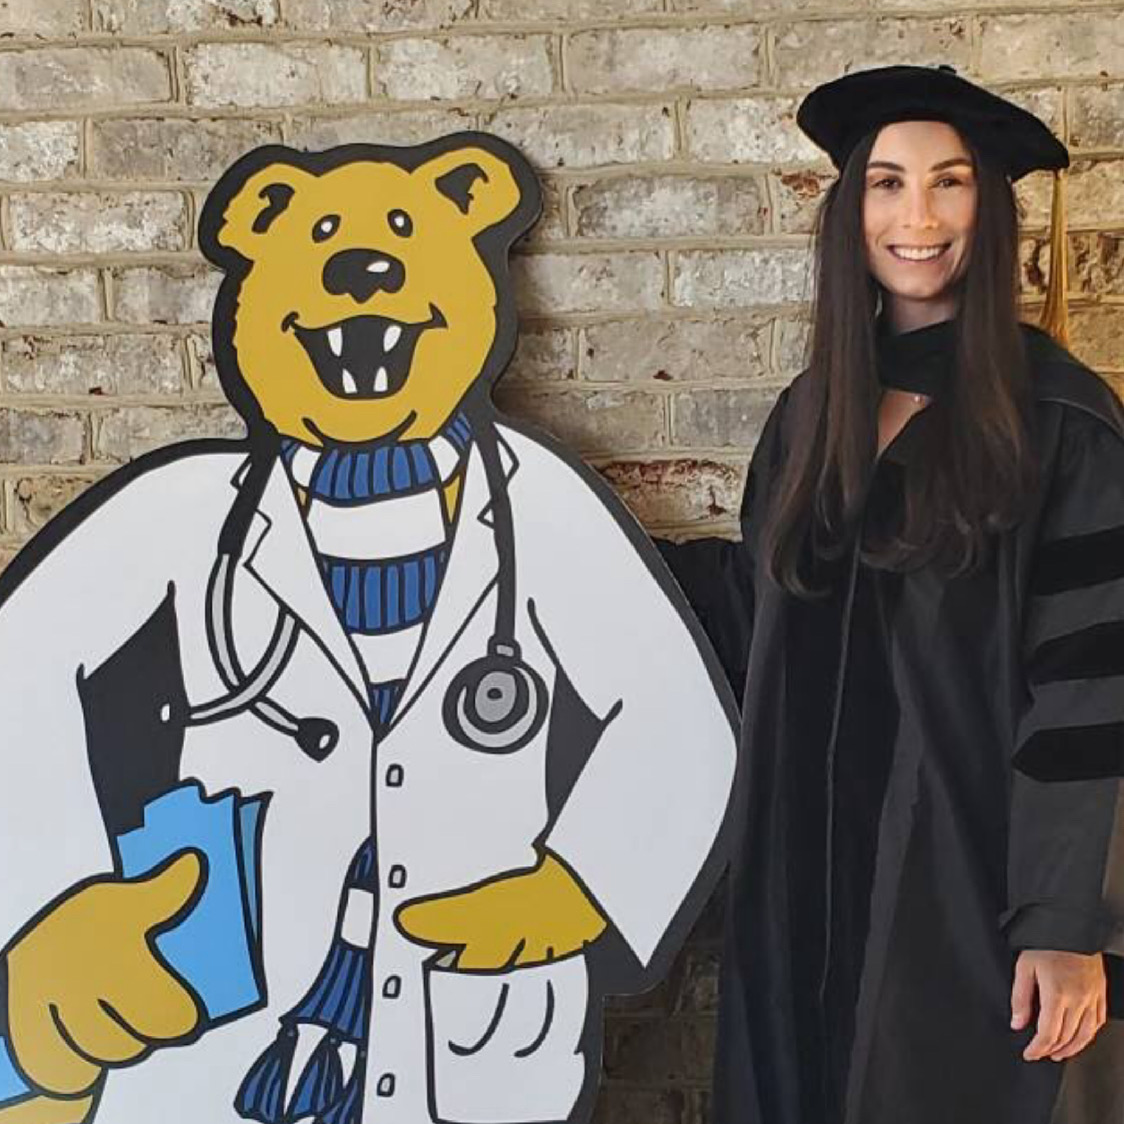 A woman in graduation regalia stands next to a large cutout of Penn State's Nittany Lion mascot.